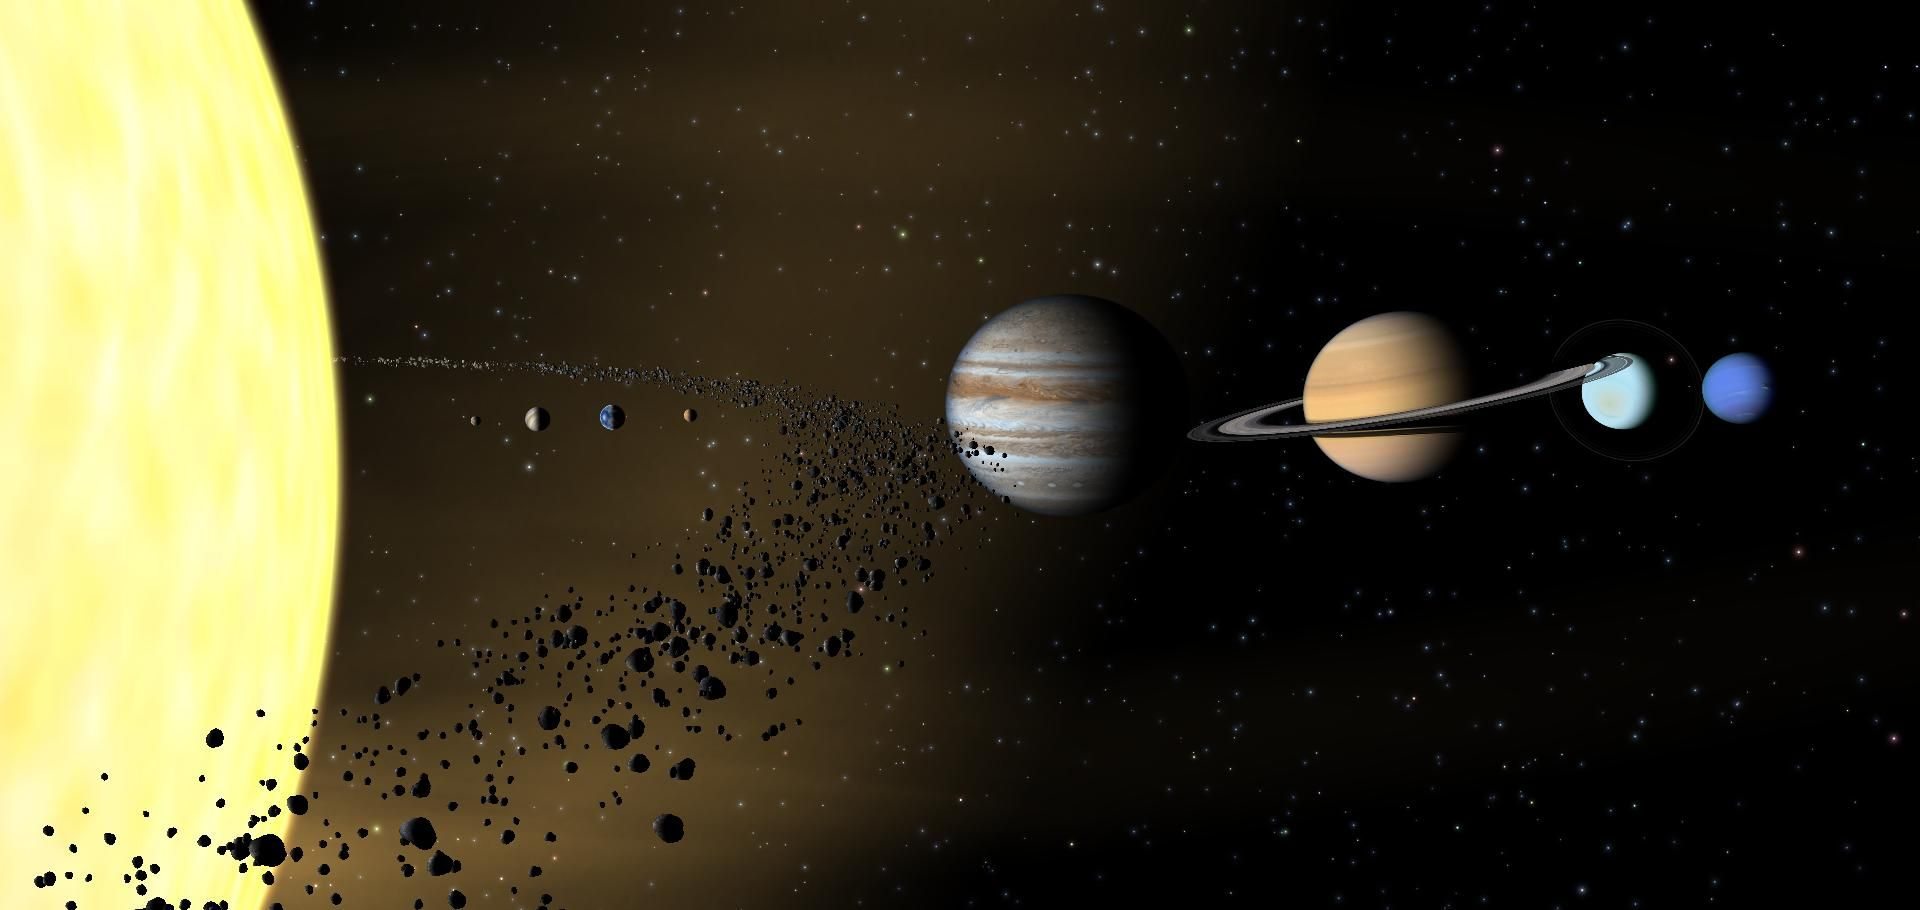 solar system with asteroid belt projects - photo #45